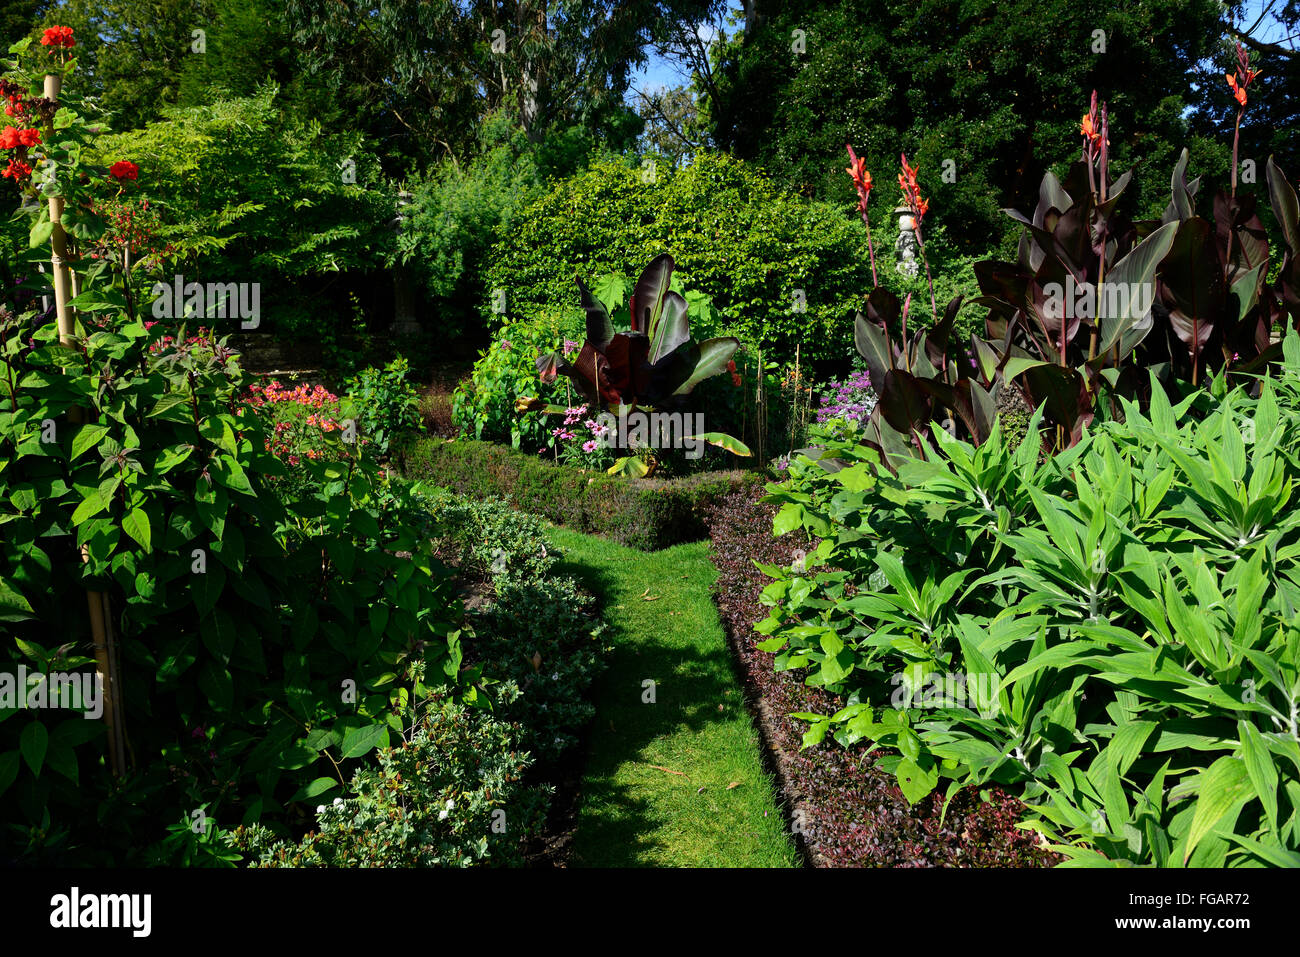 Abyssinia banana Musa ensete ventricosum canna lilies tropical border bed summer tender plant planting scheme RM - Stock Image